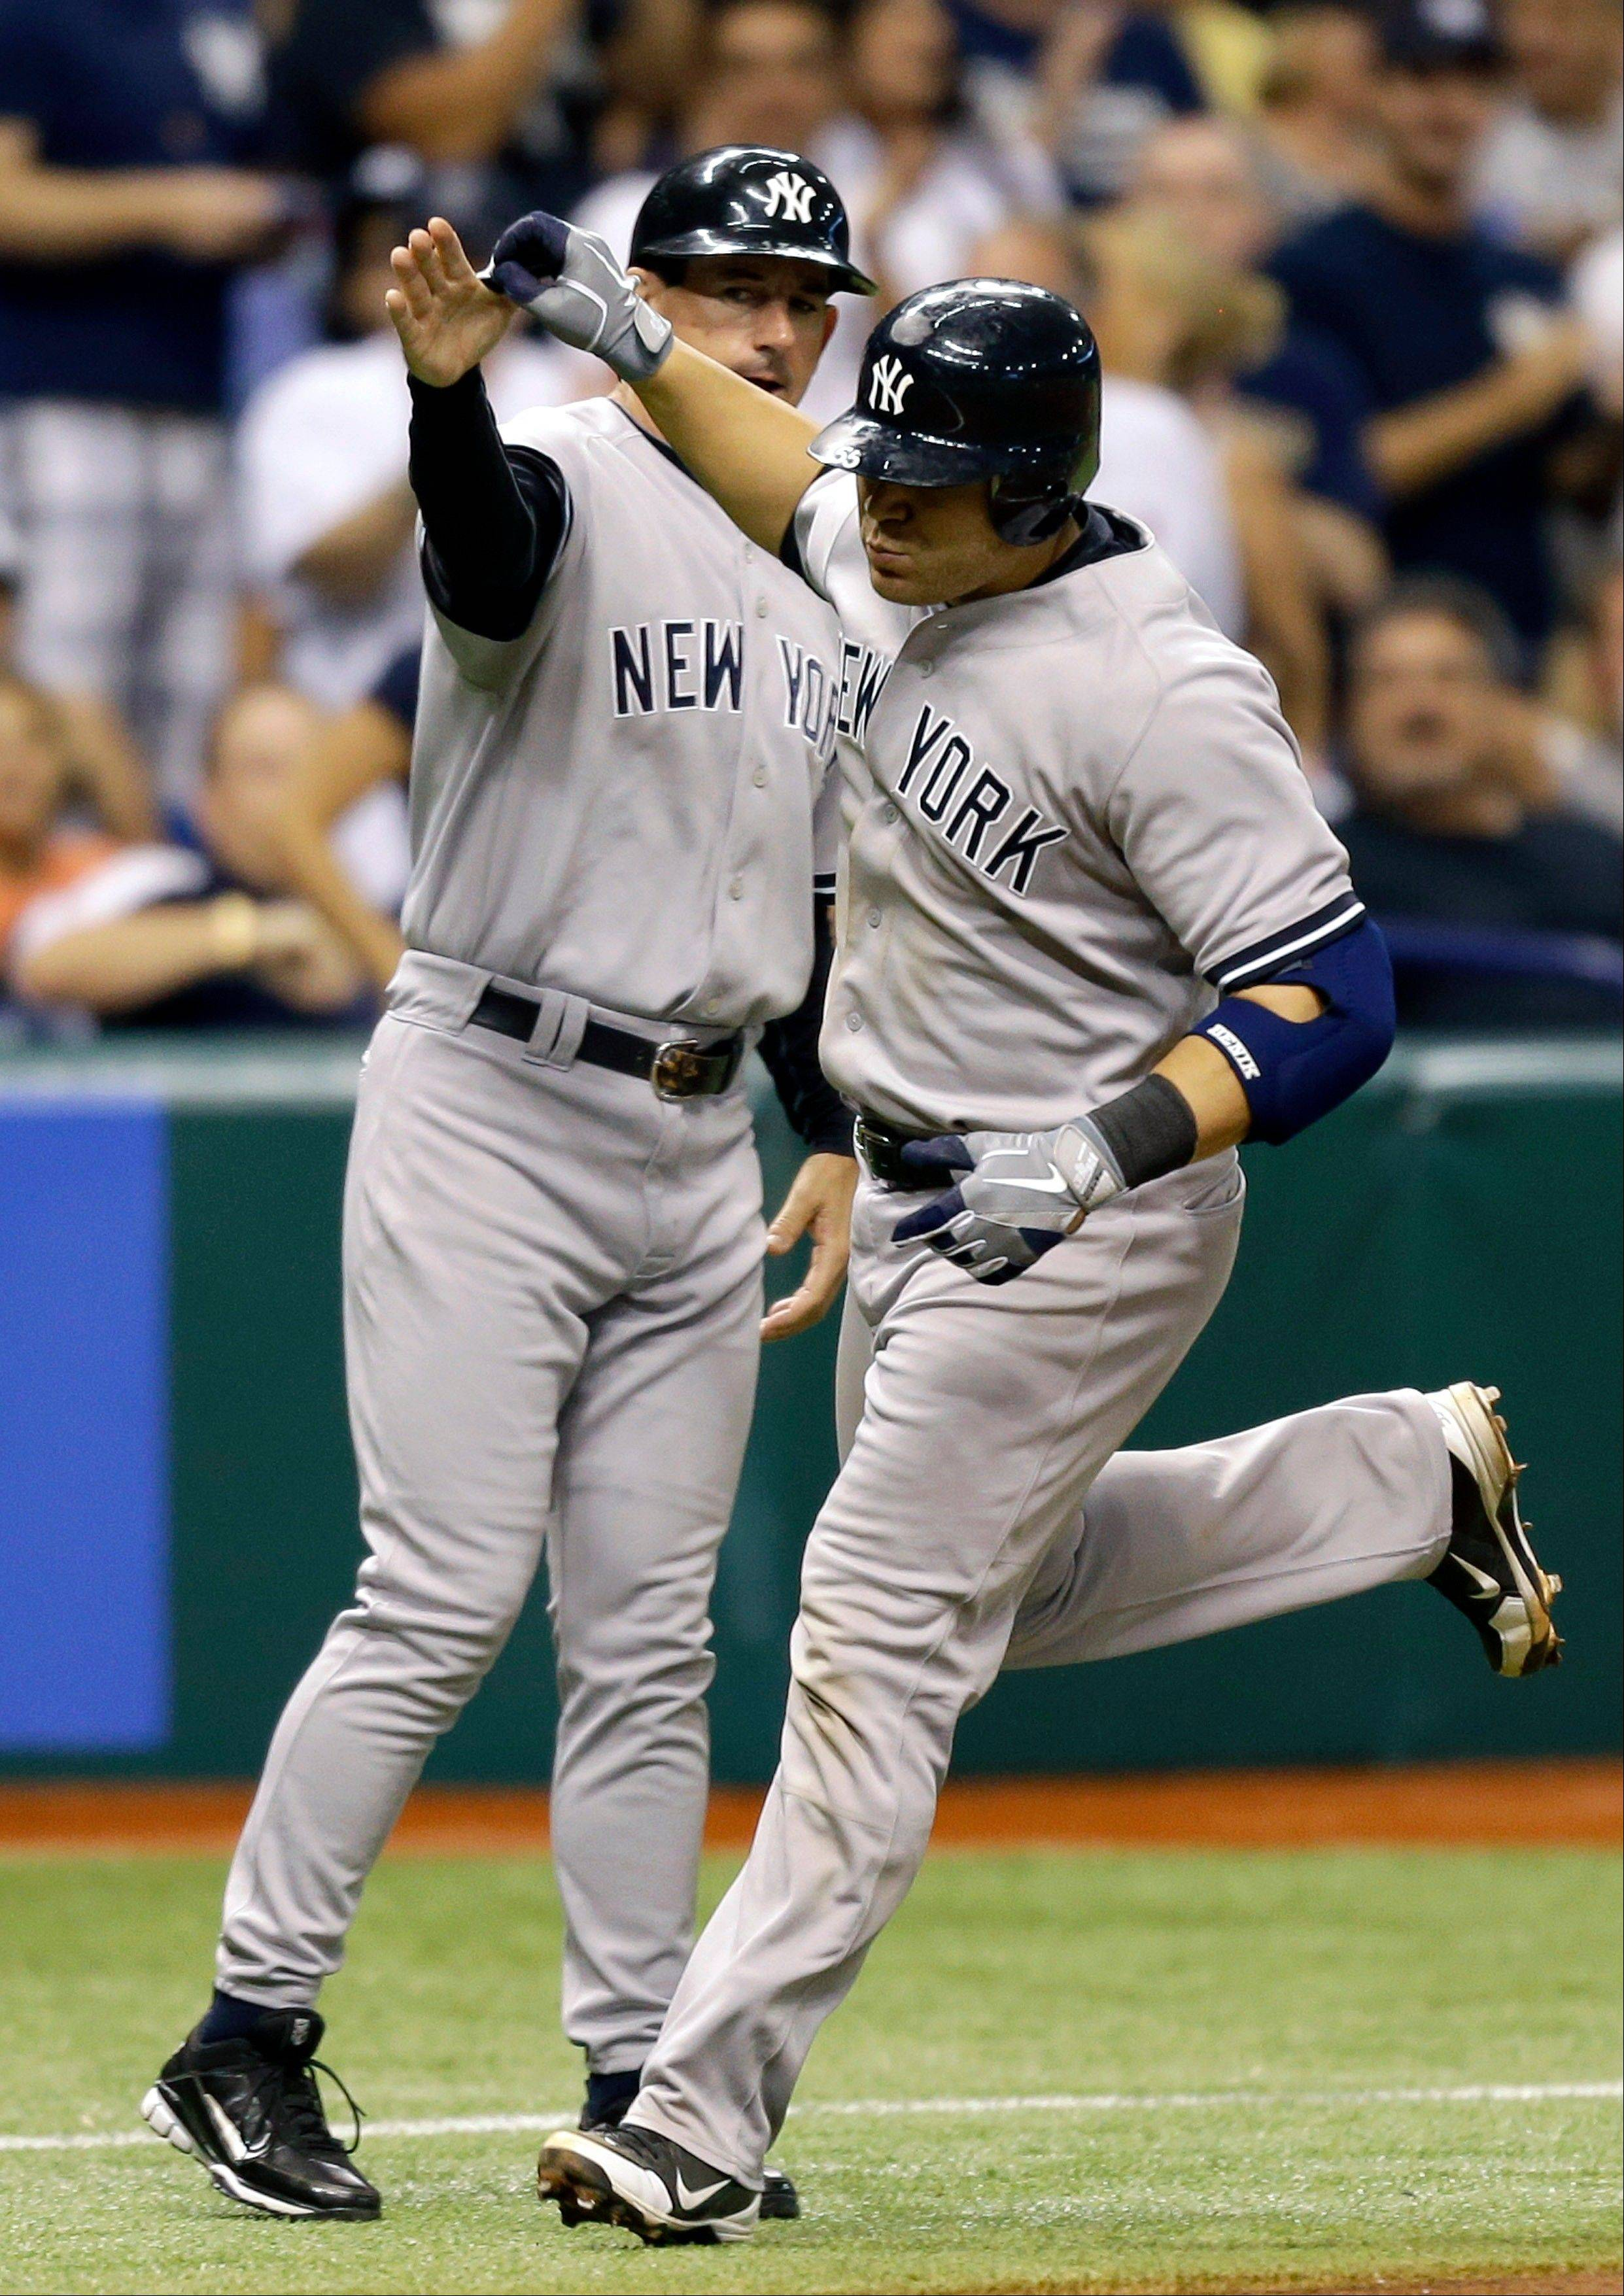 The Yankees' Russell Martin, right, high-fives third base coach Rob Thomson after hitting a sixth-inning home run off Tampa Bay Rays starting pitcher Matt Moore on Wednesday in St. Petersburg, Fla.